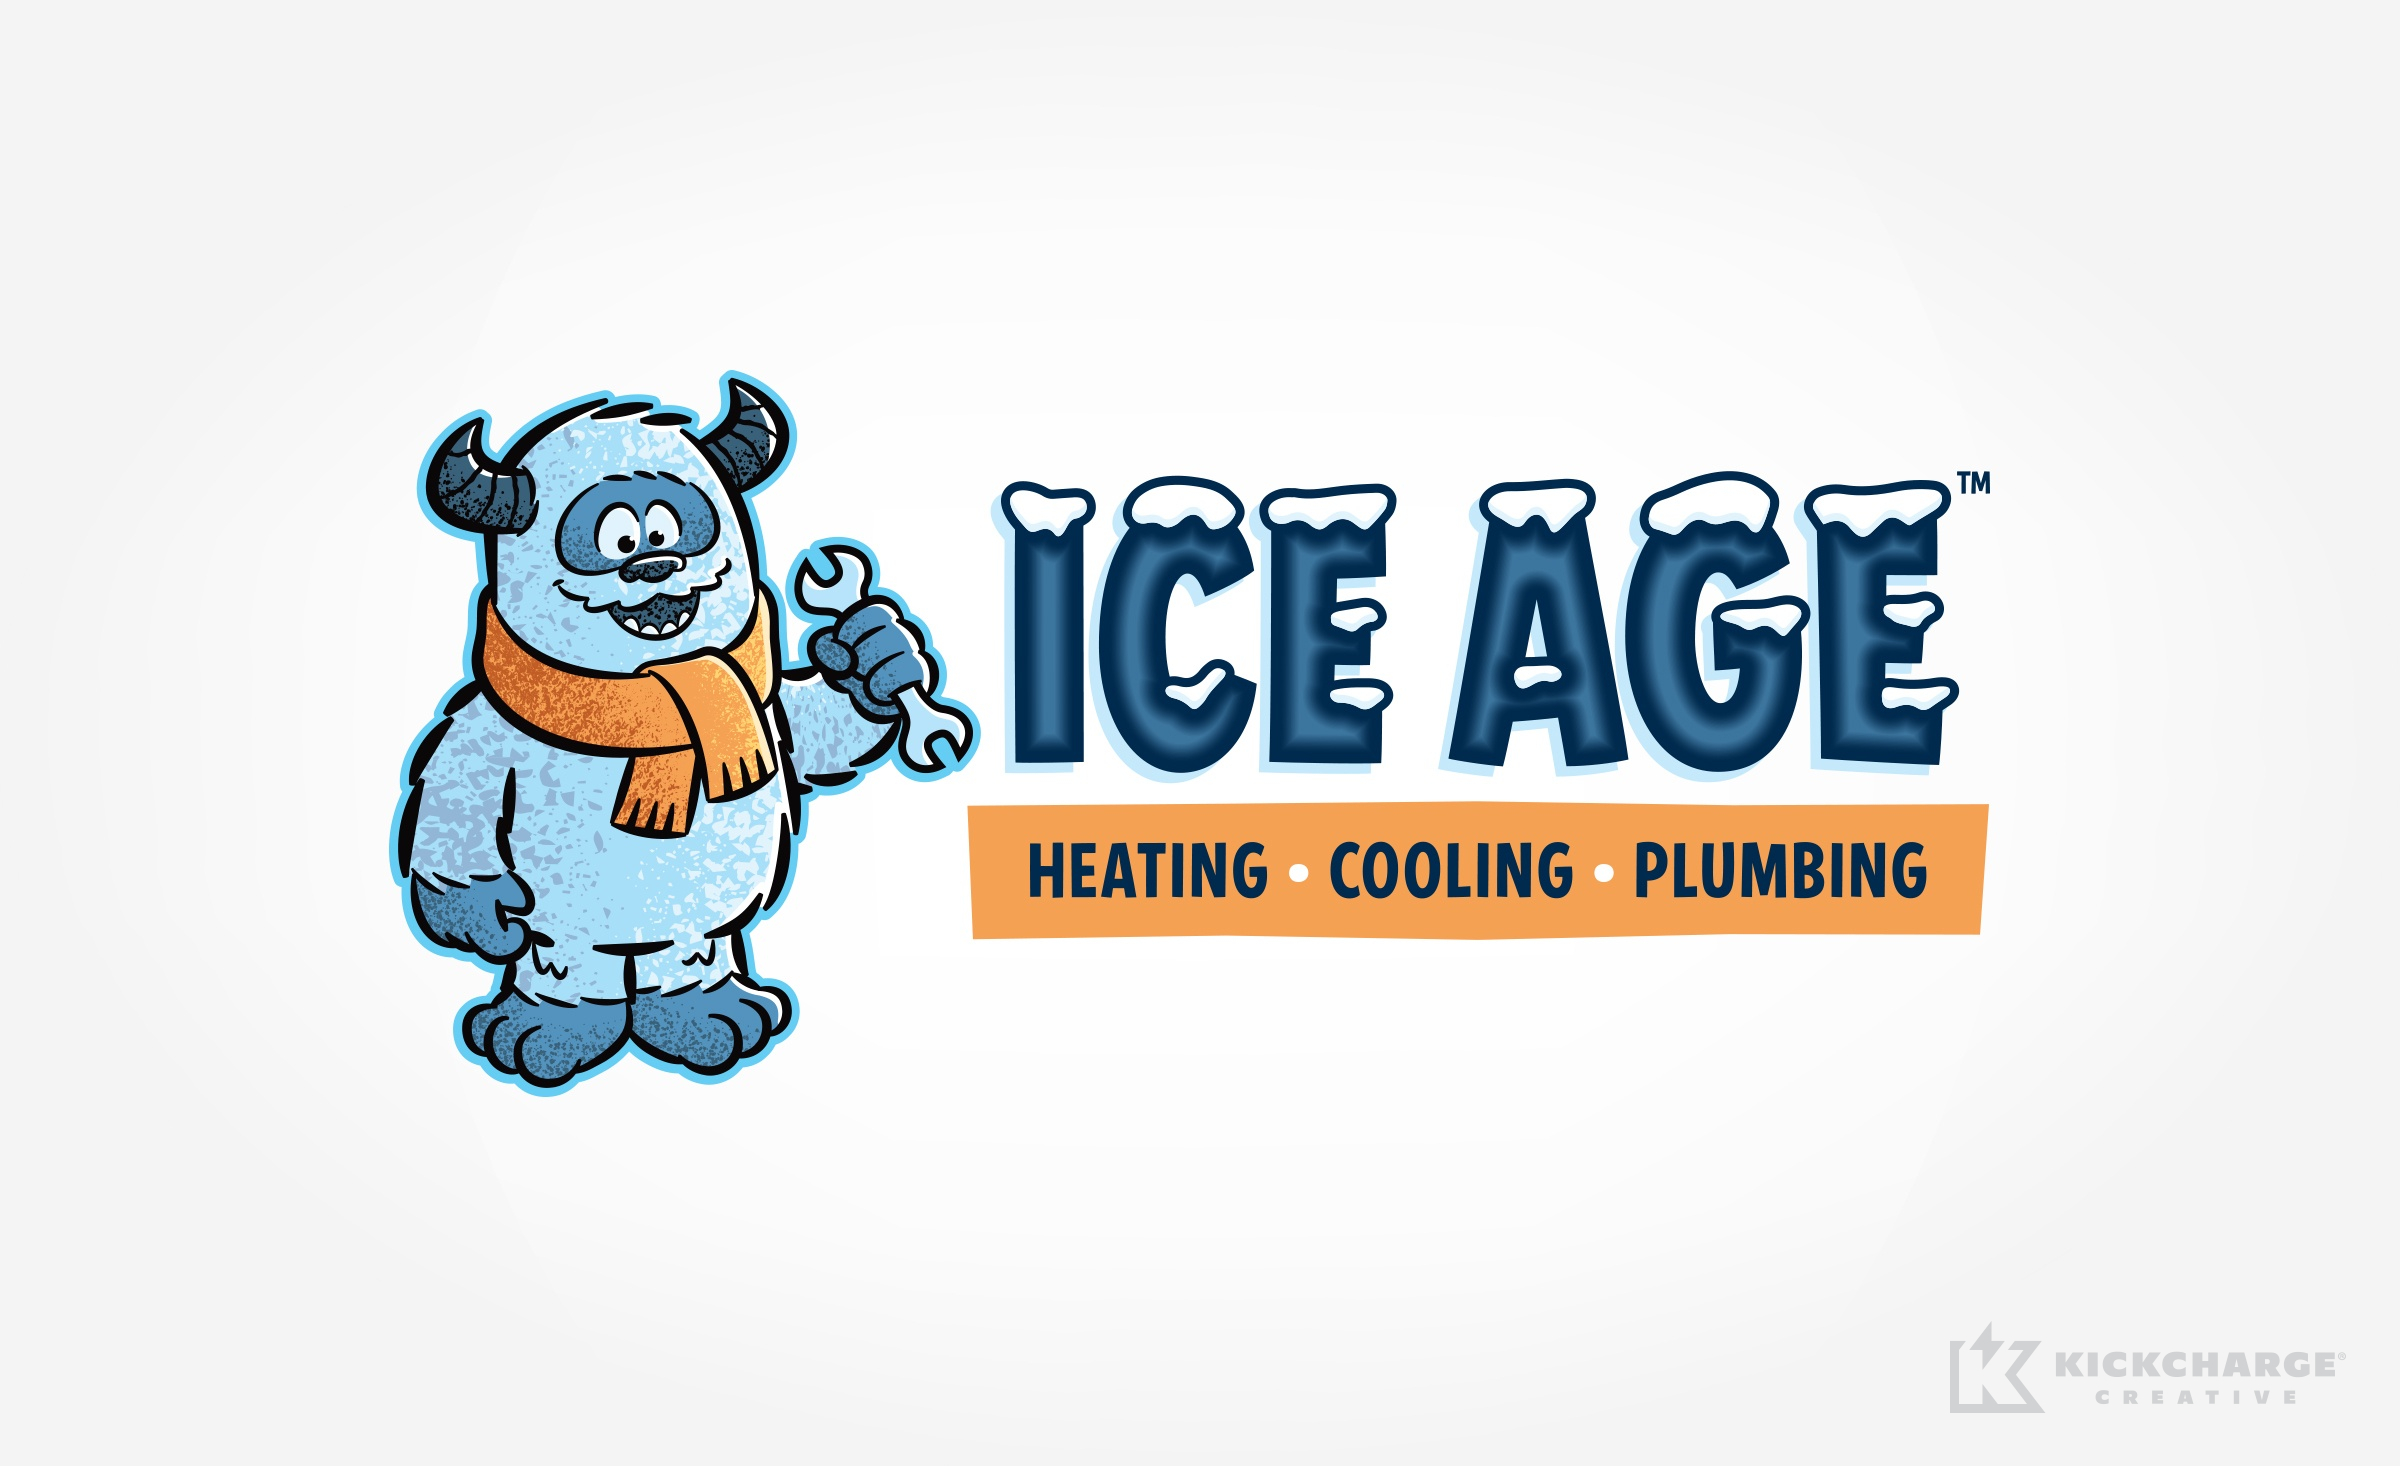 hvac and plumbing logo for Ice Age